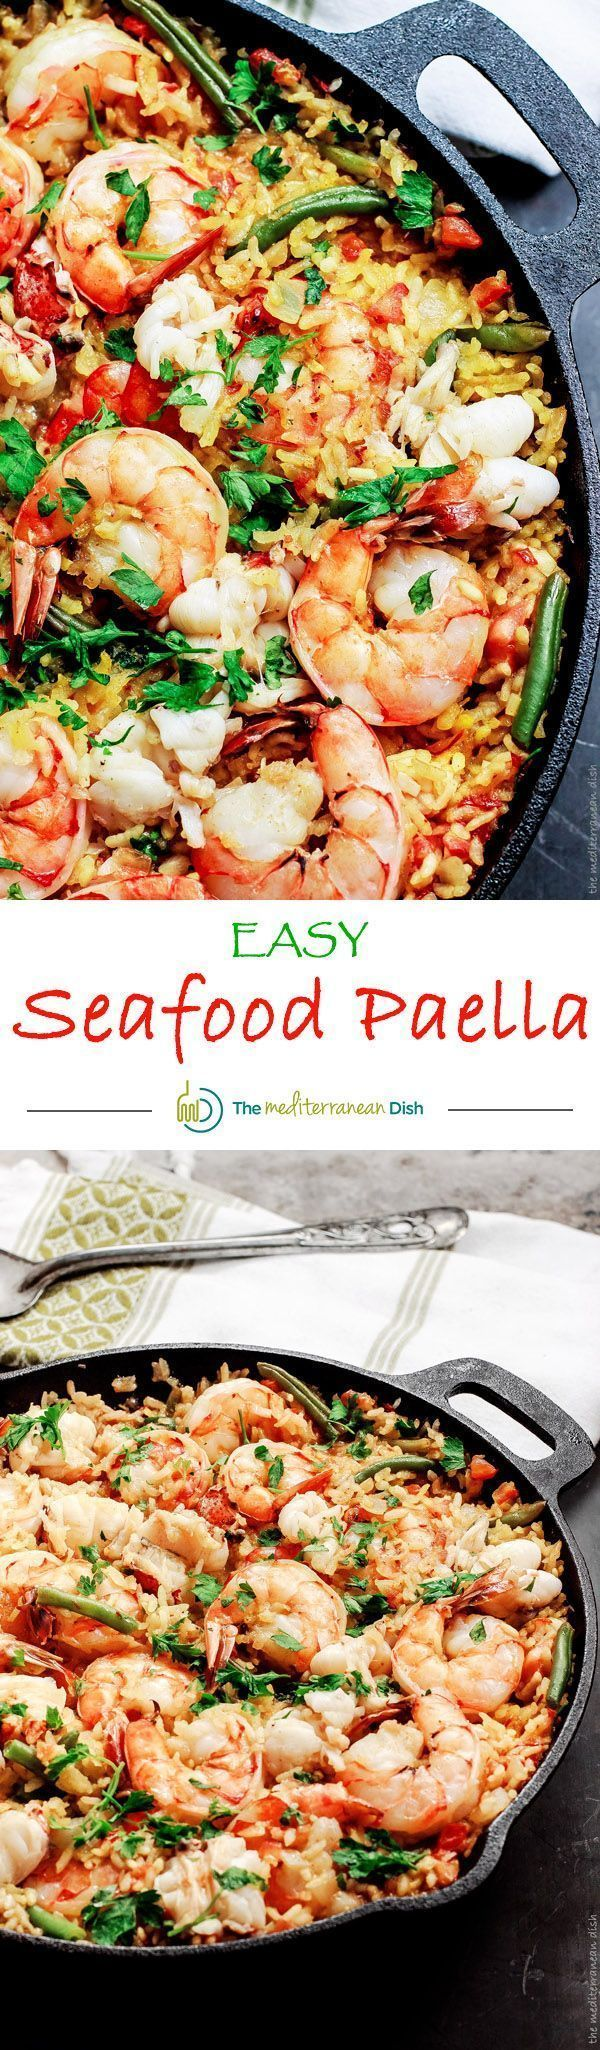 Easy Seafood Paella Recipe   The Mediterranean Dish. Recipe comes with step-by-step photo tutorial to guide your cooking! Love this shrimp and lobster nestled in a bed of saffron rice! A must try from @themeddish